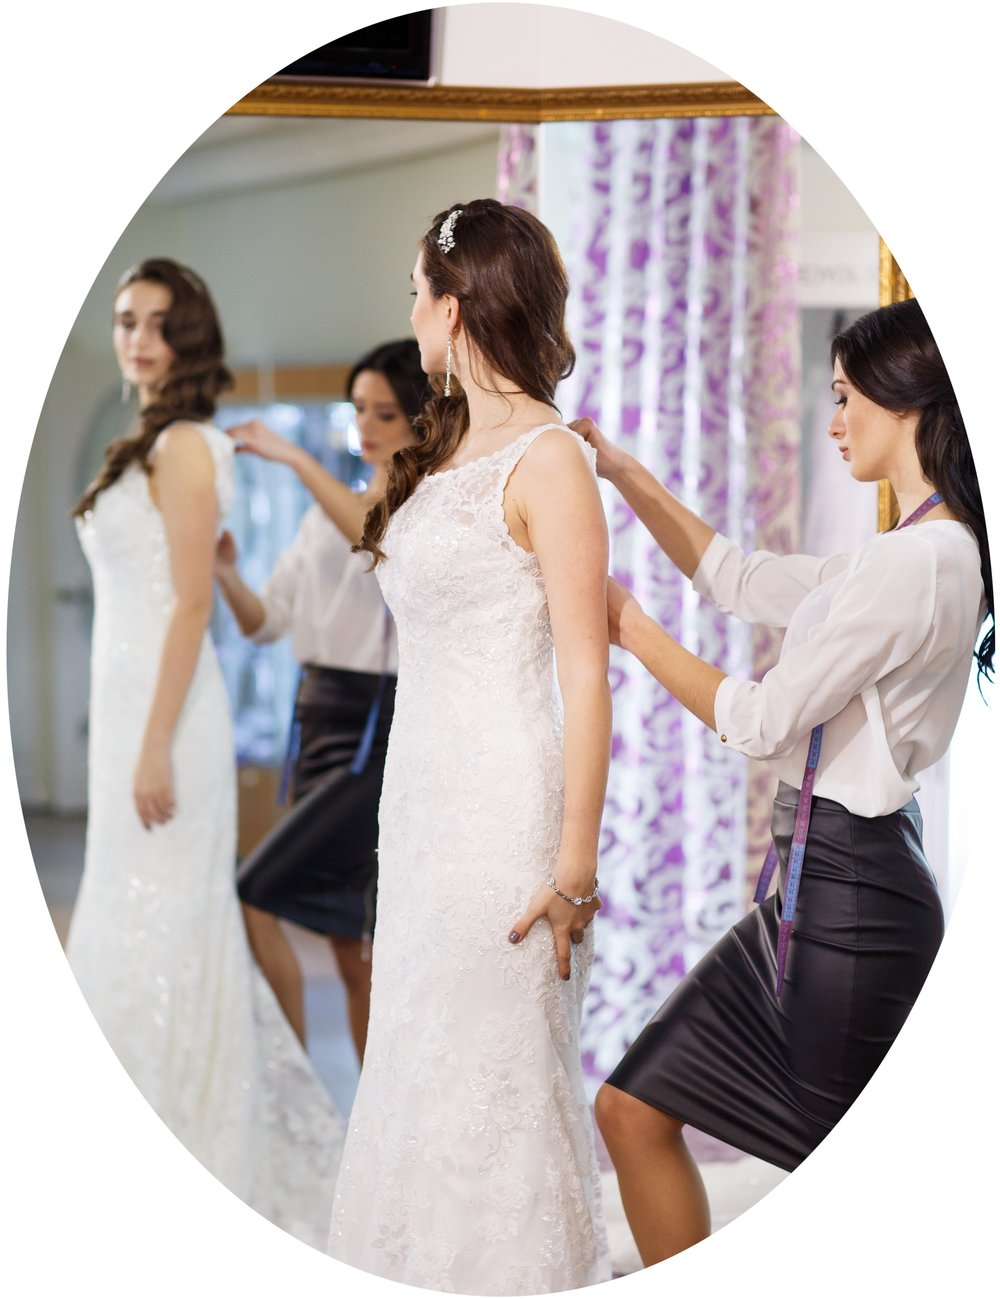 Stylist of the Year - The STYLIST OF THE YEAR application is LIVE! From now until December 31st, 2018, we are officially accepting nominations for the Do You Speak Bride STYLIST OF THE YEAR!!!Last year, our inaugural Stylist of the Year award winner was Patty Smulski from Norman's Bridal. Her work ethic, her passion to create life moments for her brides, and her incredible connection with her community, make us so proud to say that Patty was our first Stylist of the Year.It's so hard to believe another year has passed, but we are now searching for our 2018 Do You Speak Bride Stylist of the Year! Are you ready to enter?! We are SOOOOO pumped about this award, and we can't wait to see the amazing stylists that enter this year!